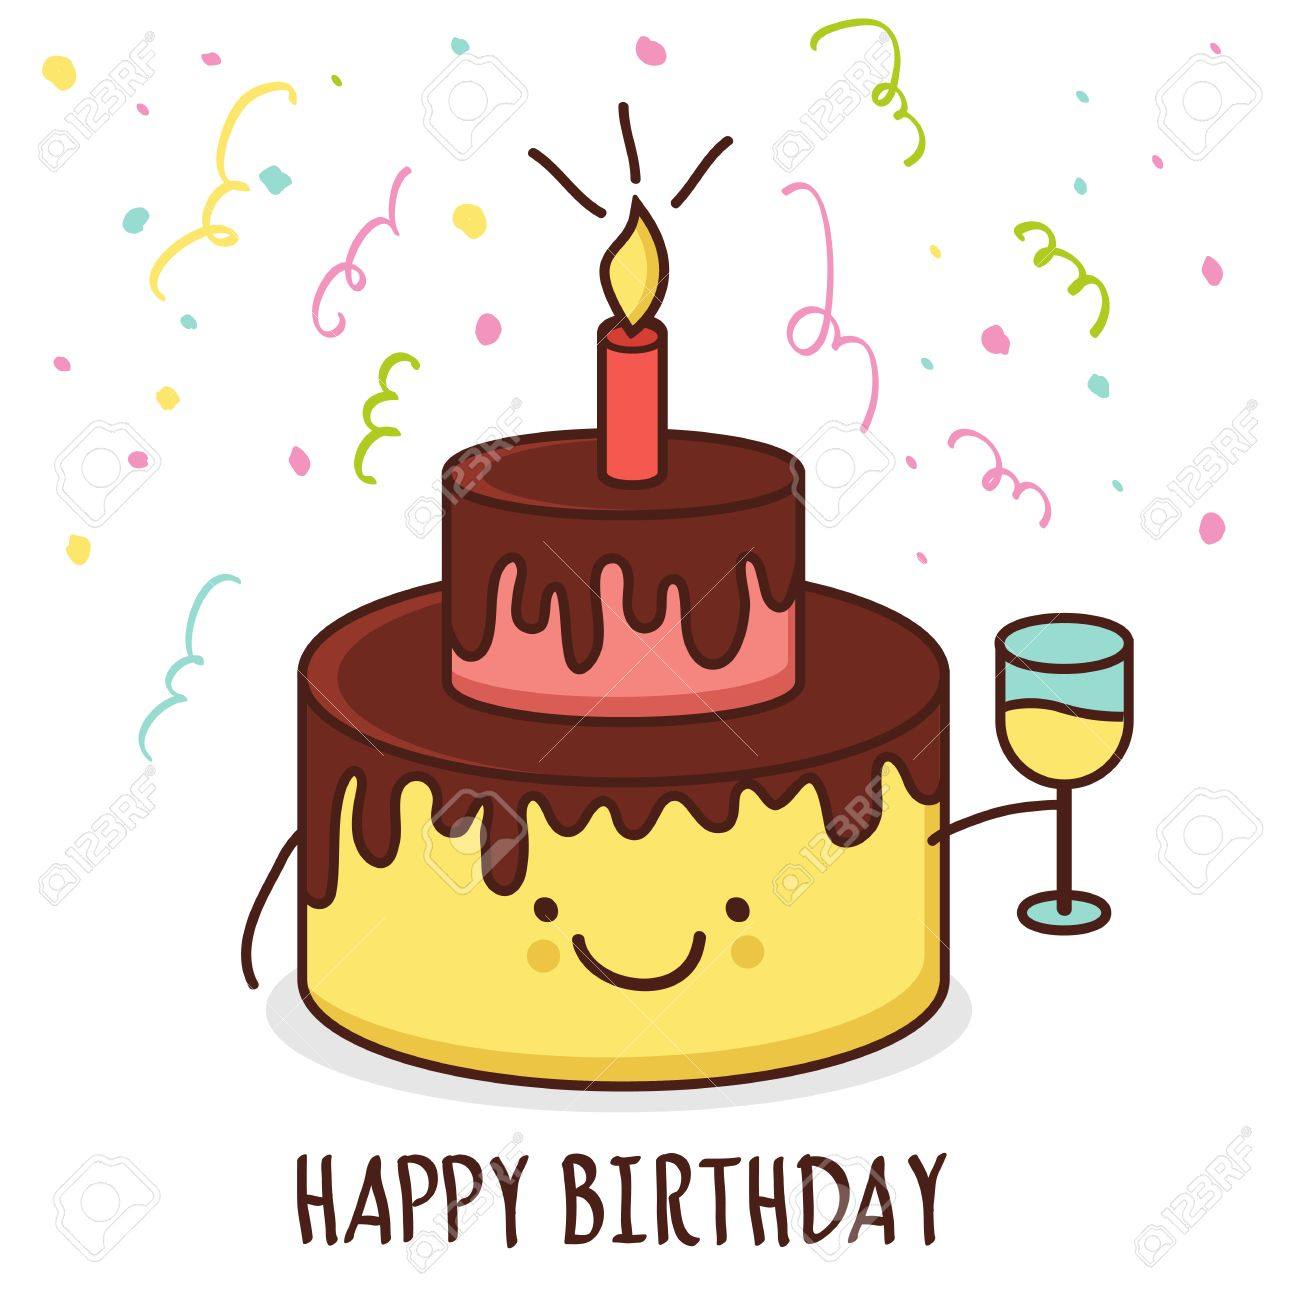 Cute Cartoon Smiling Cake With Glass Of Champagne. Vector